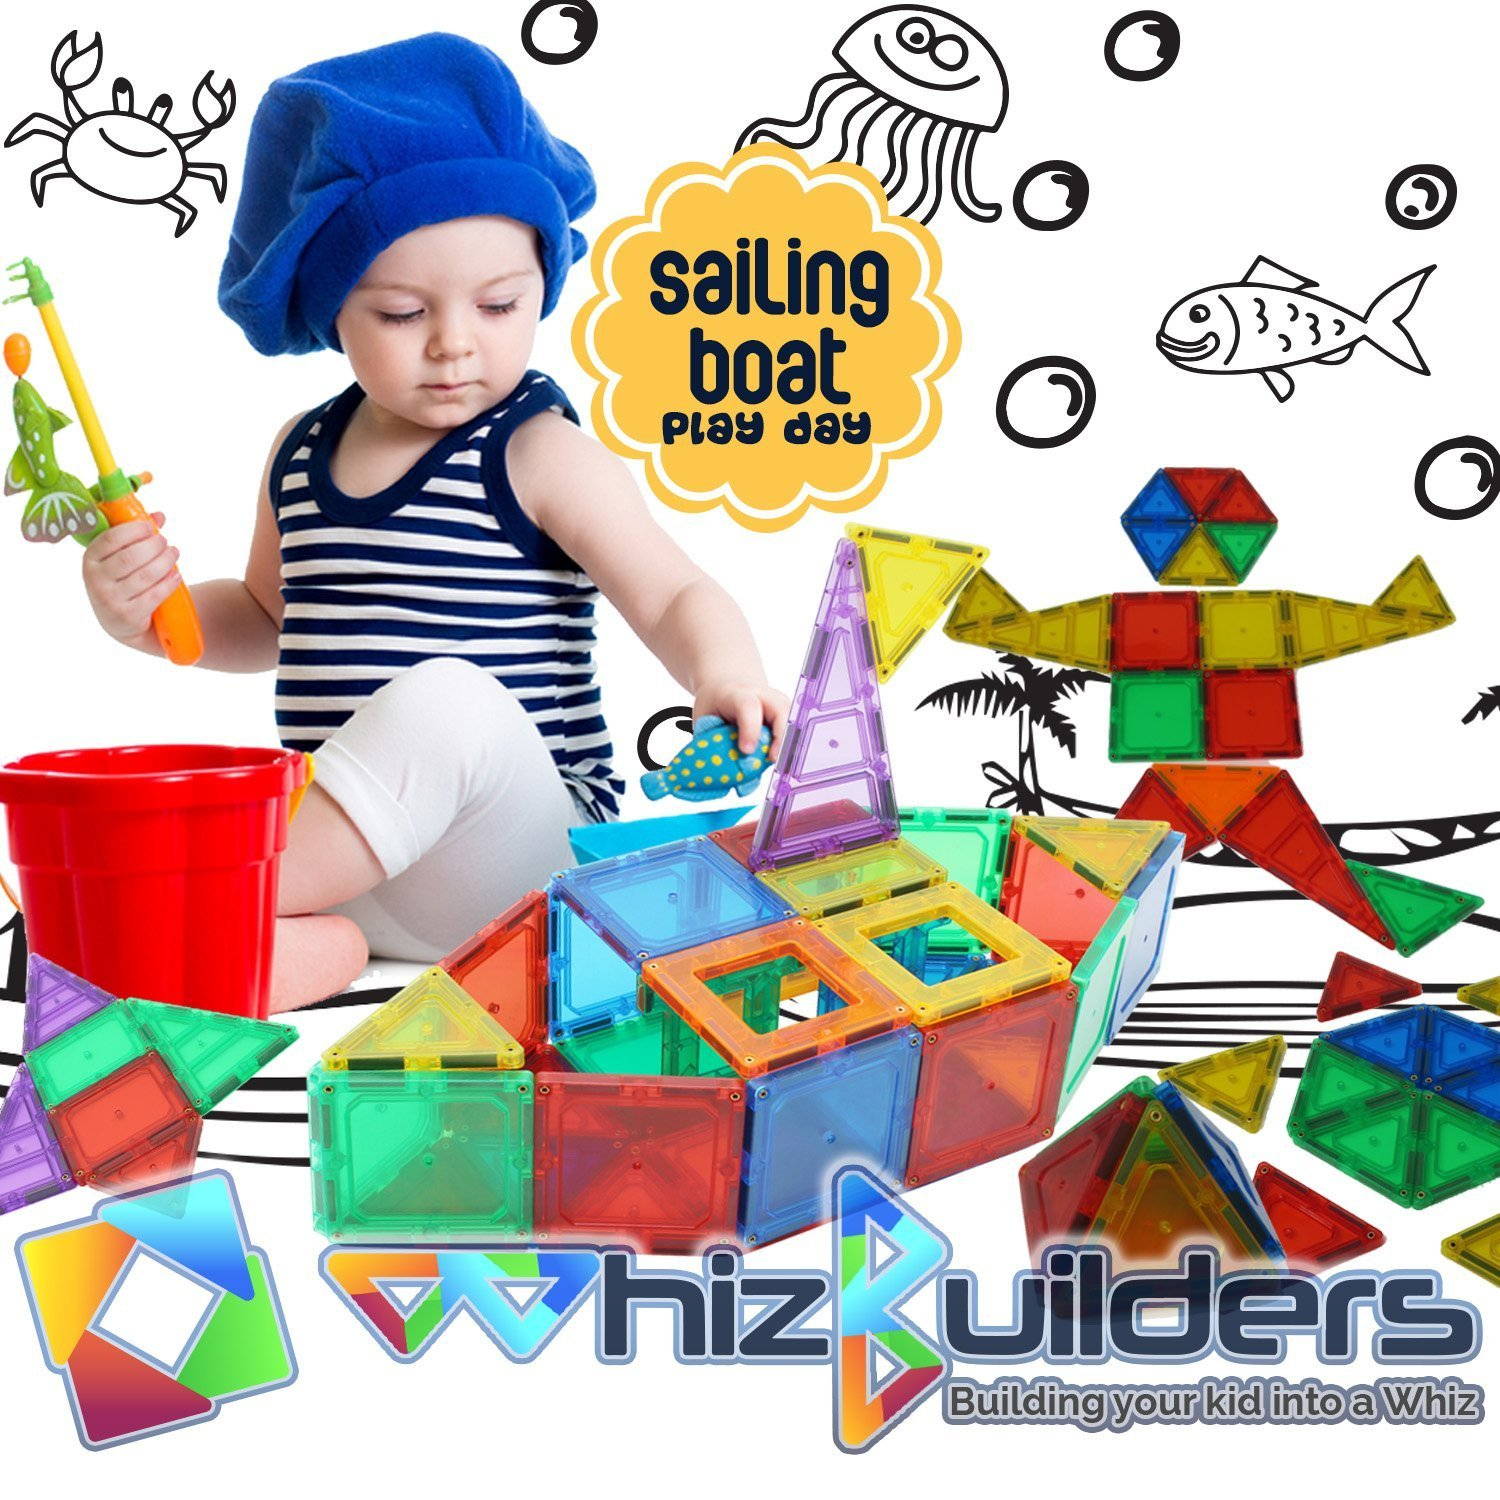 Magnetic Building Tiles Toys Set - Tiles Block Toy Kit for Kids - STEM Educational Construction Stacking Shapes - 60 Pieces by WhizBuilders (Image #4)